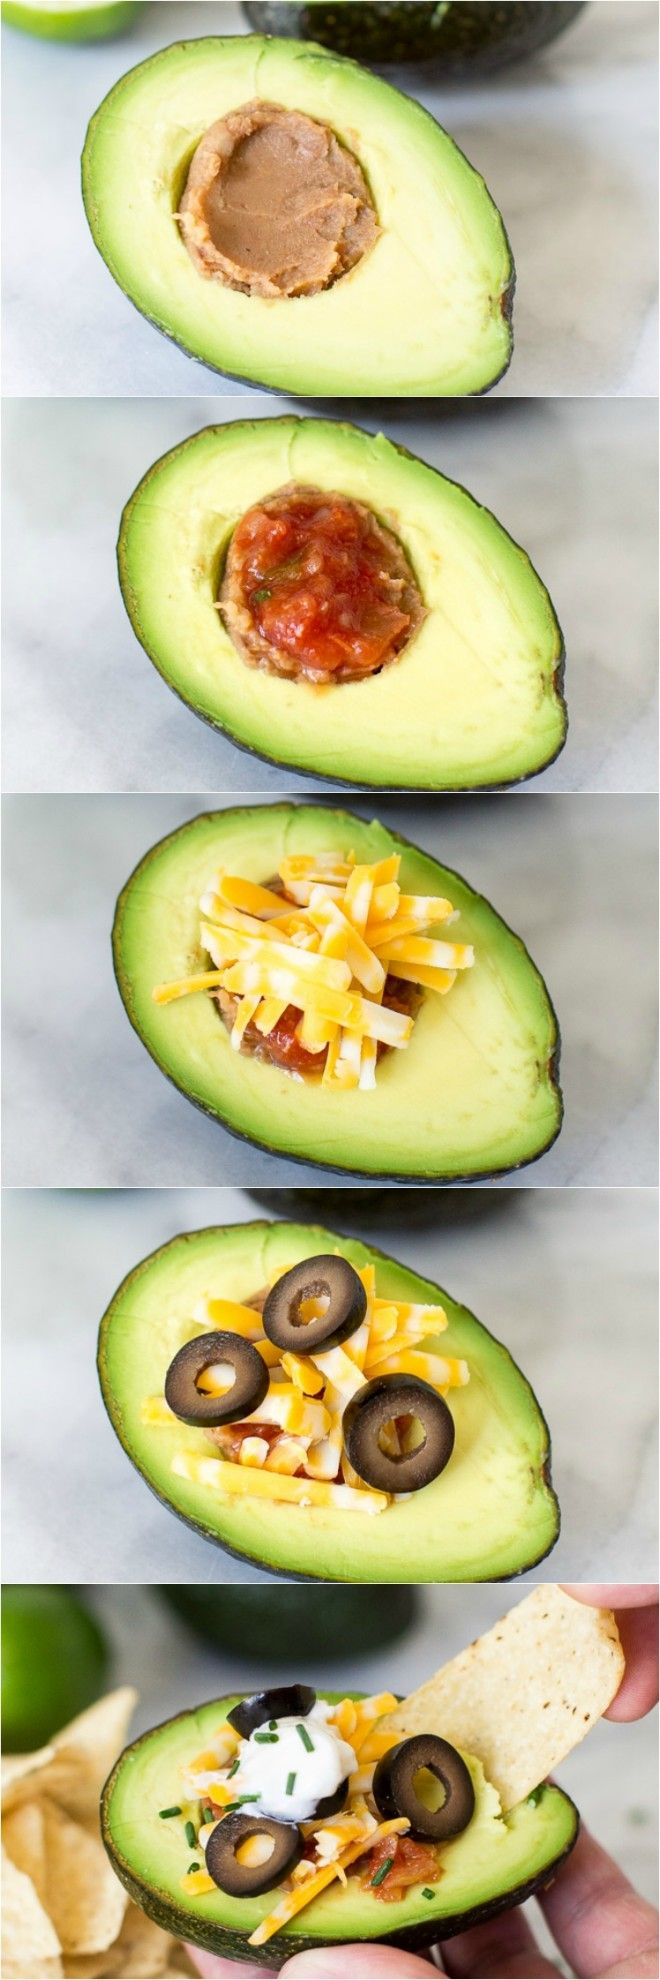 Avocado halves are the tastiest way to serve 7 Layer Dip. Just slice, stuff, and…